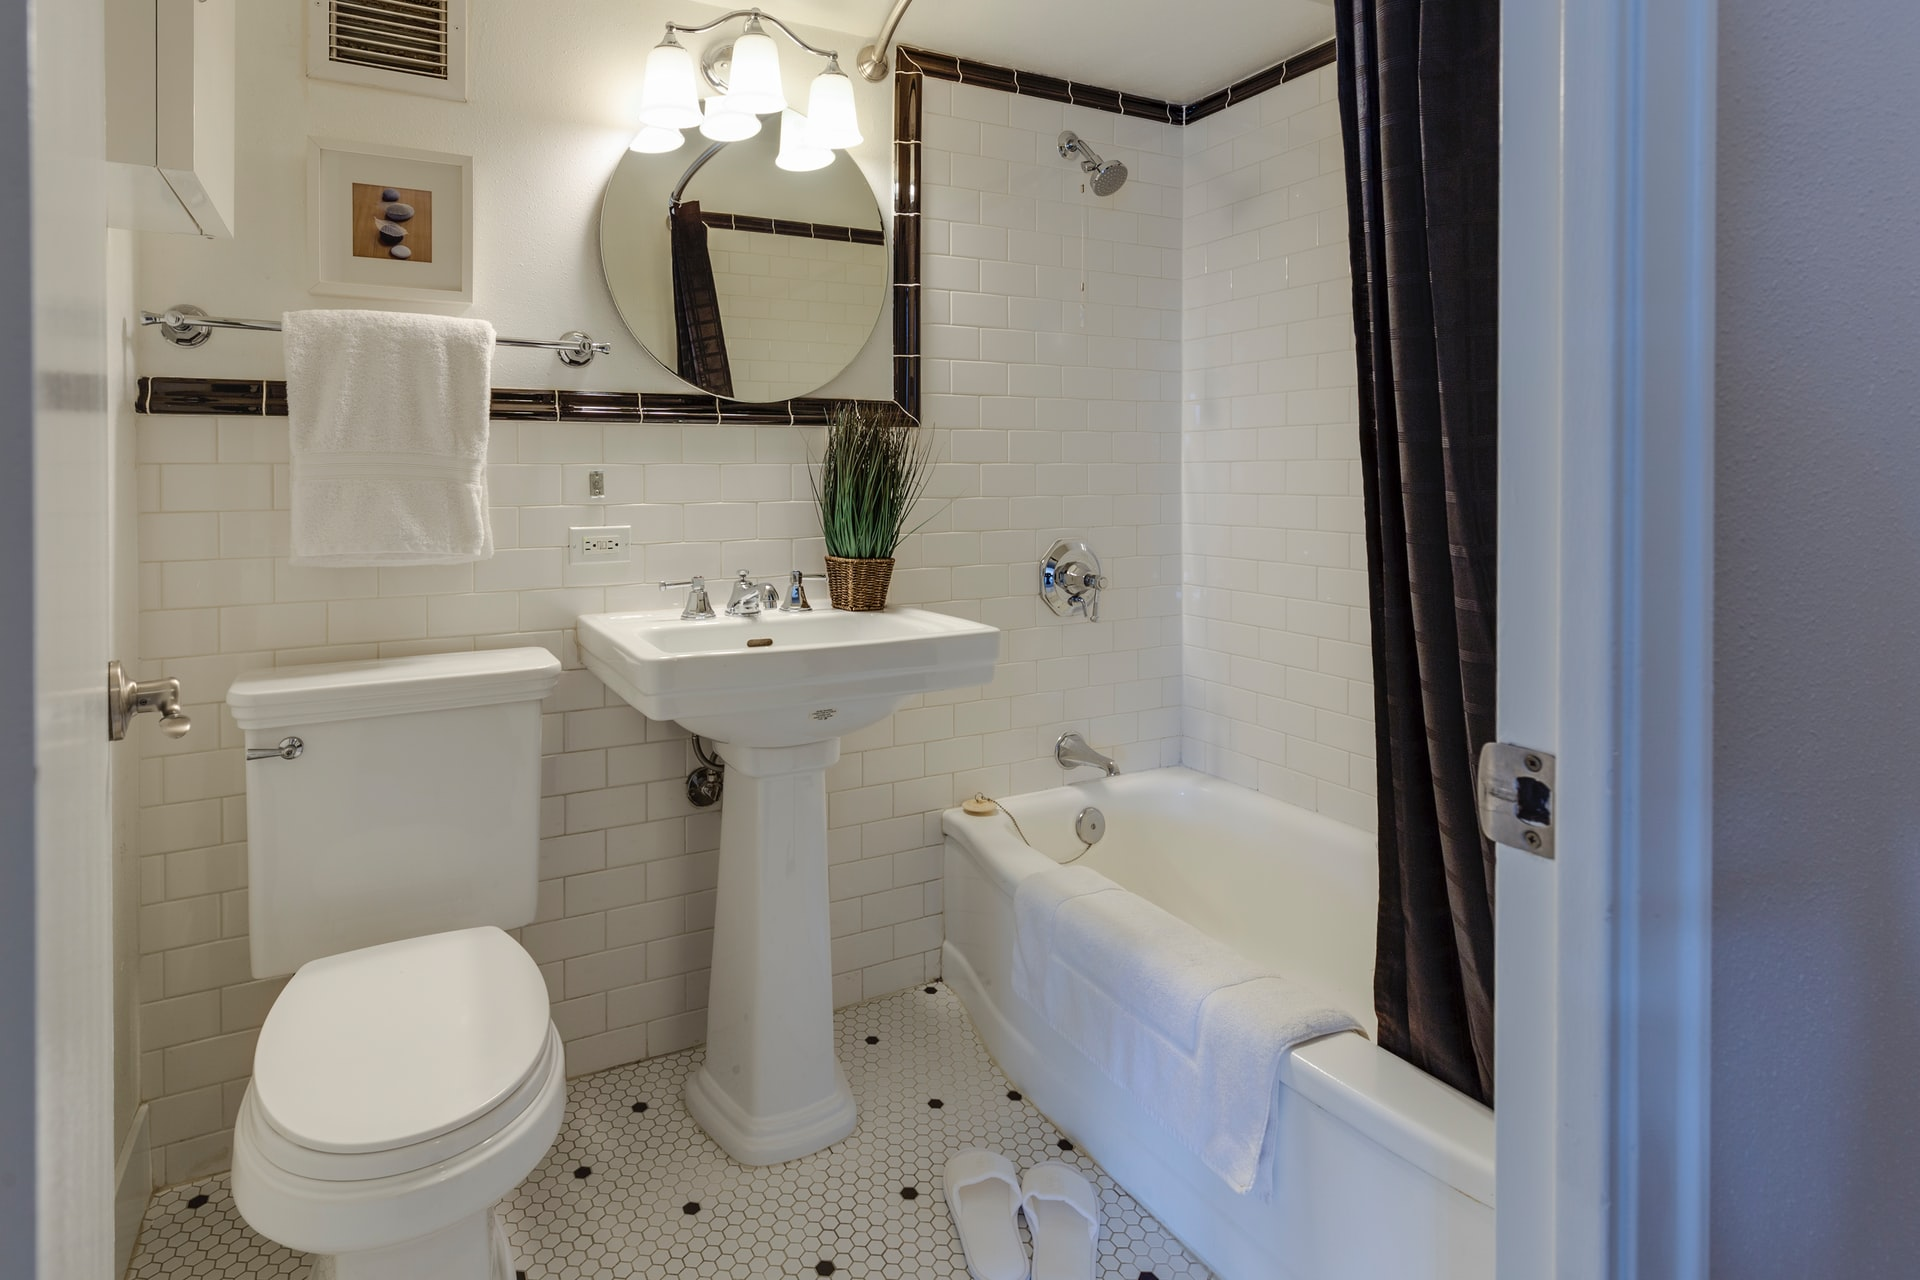 Things to consider when buying a new toilet seat, Zazzy Home